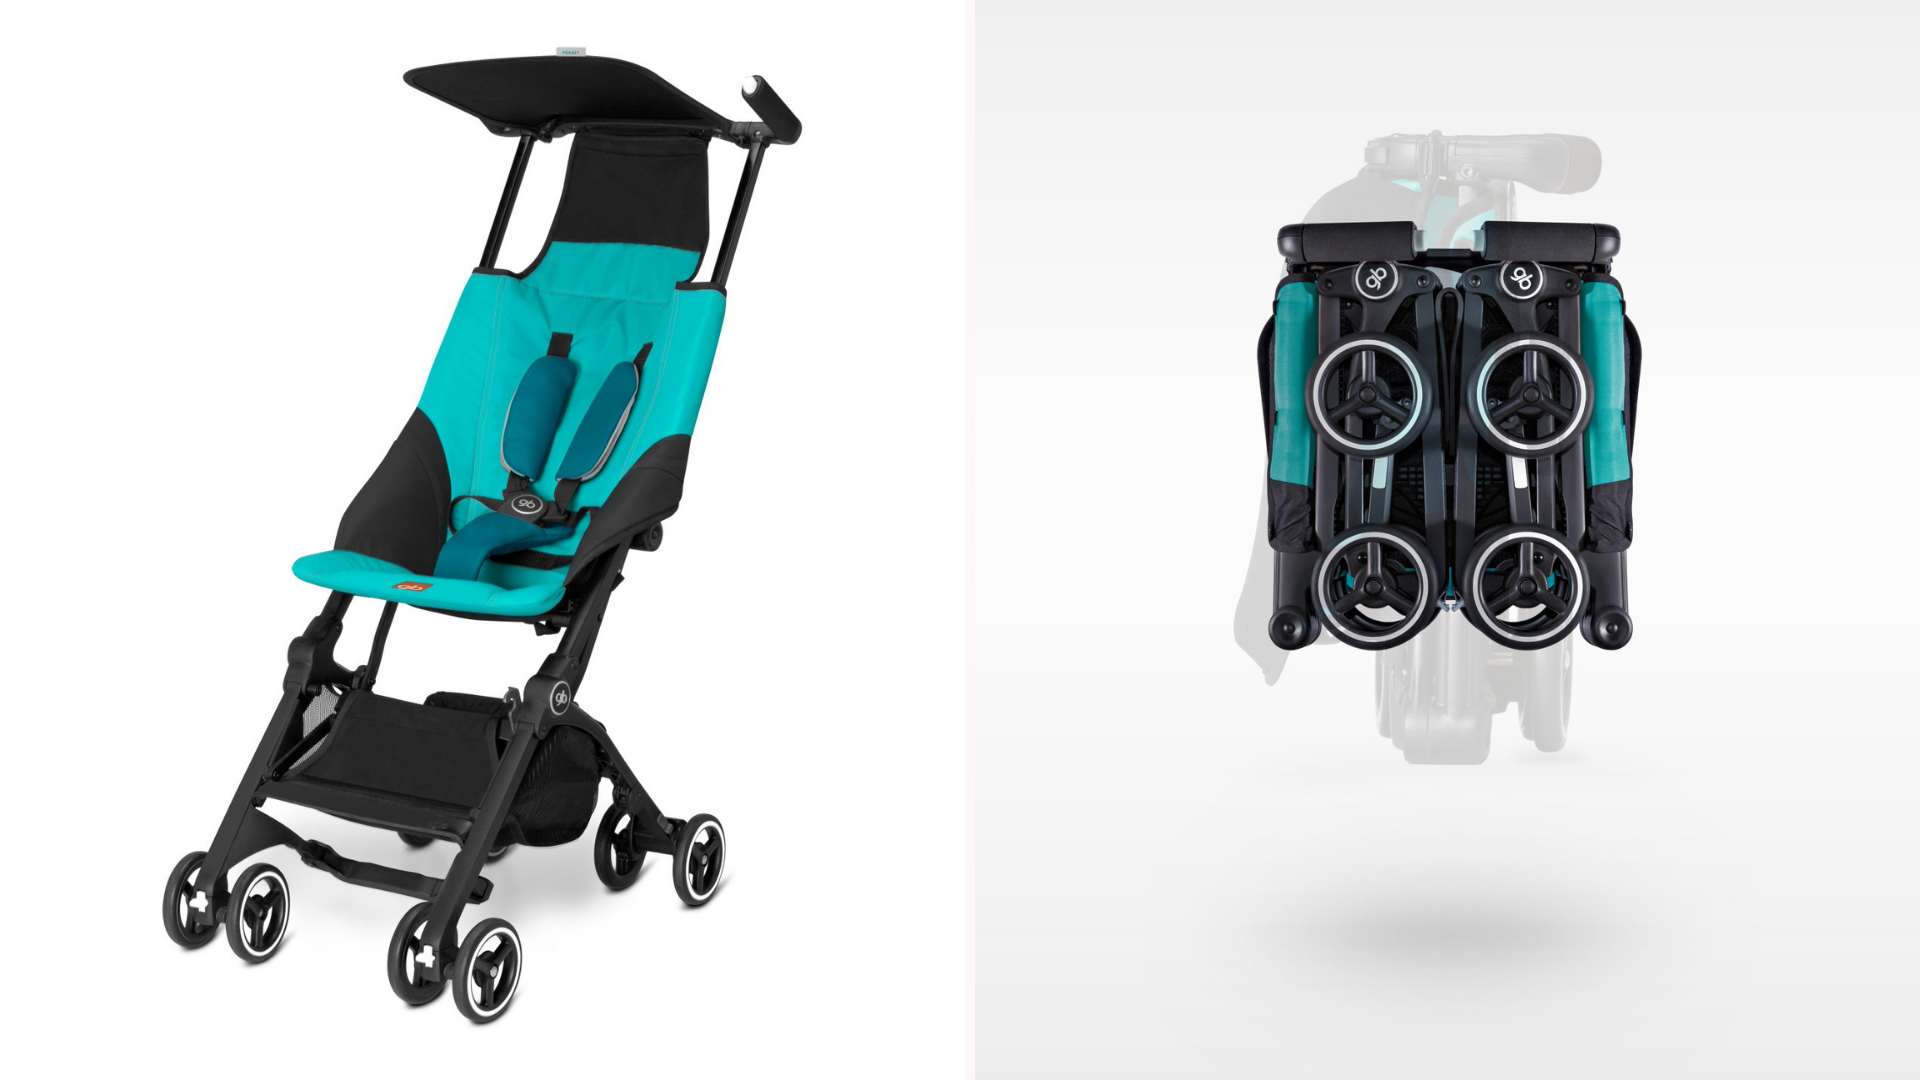 A Gb Pockit stroller in use.